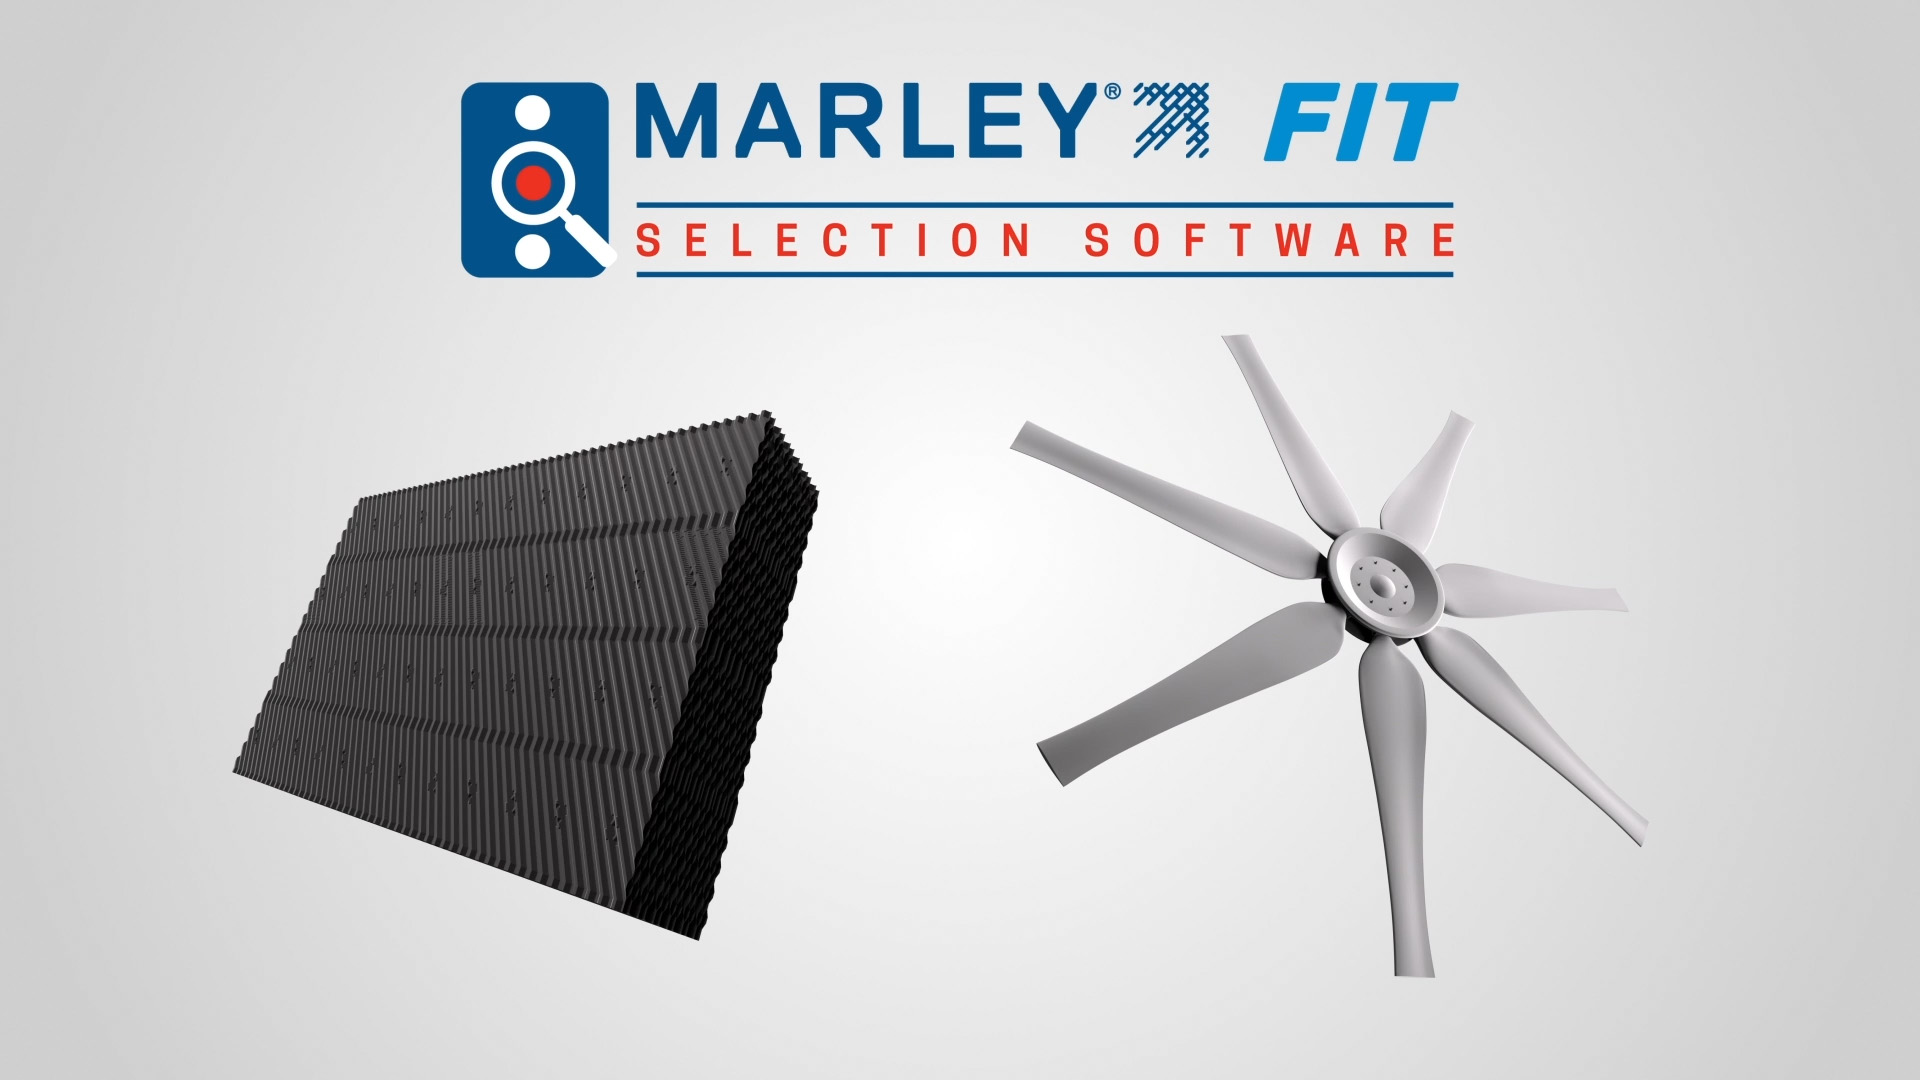 Marley Fit Selection Software